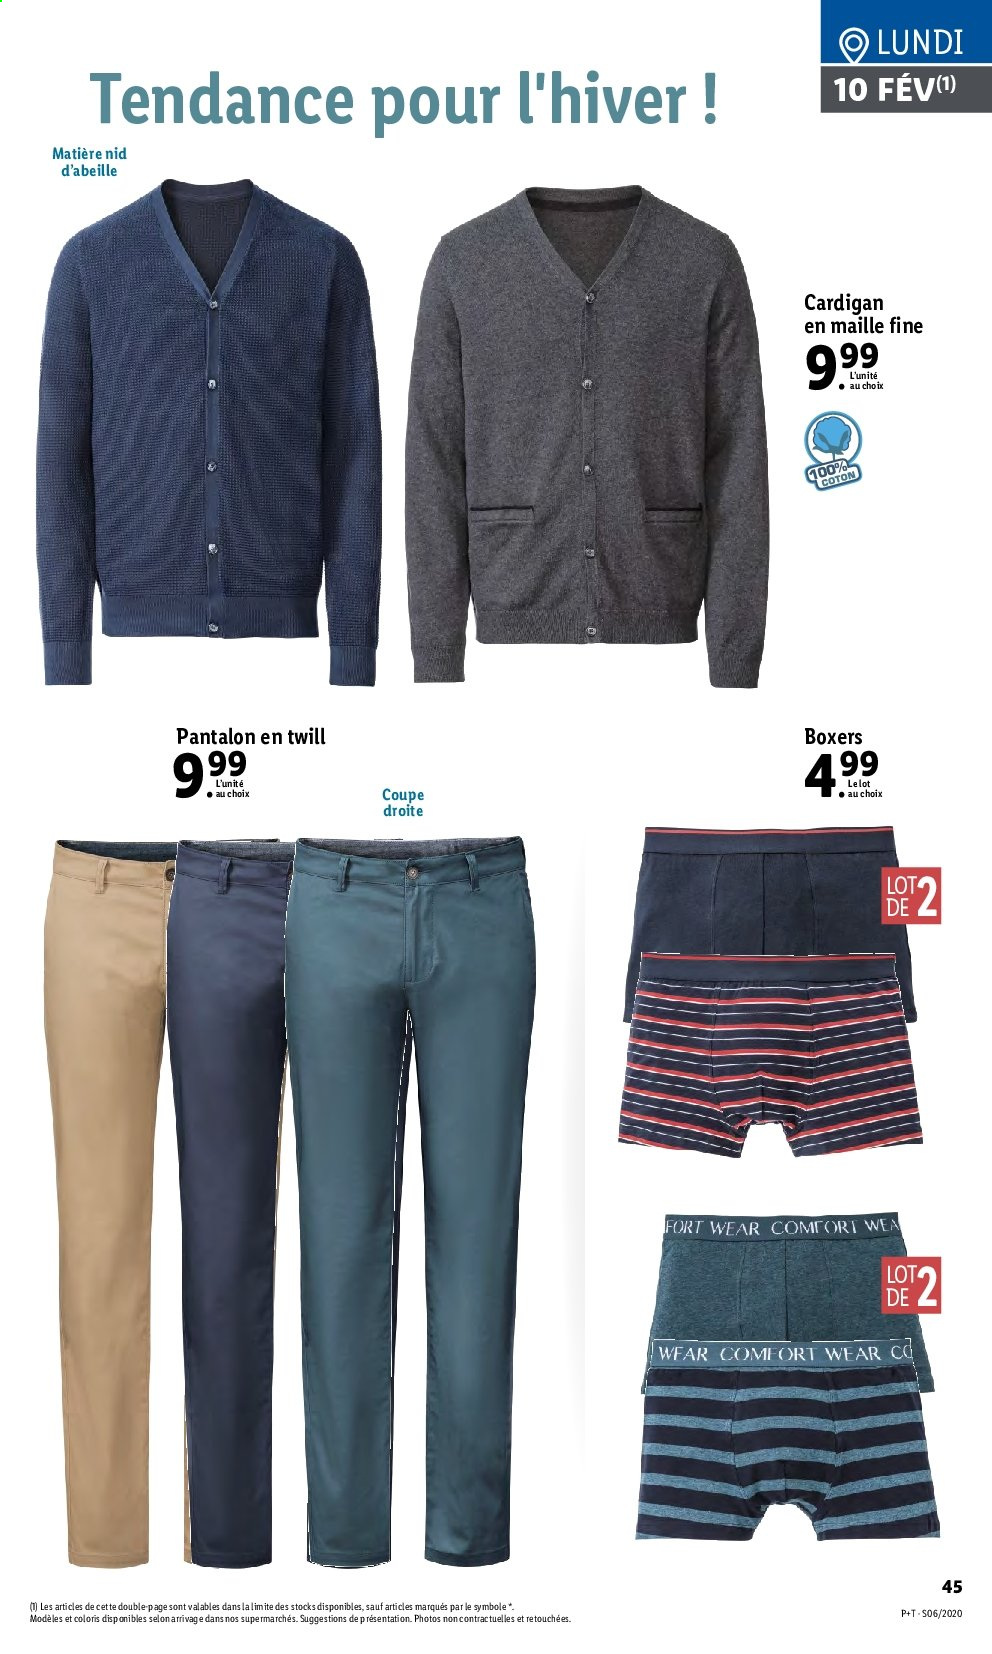 Catalogue Lidl - 05.02.2020 - 11.02.2020. Page 45.